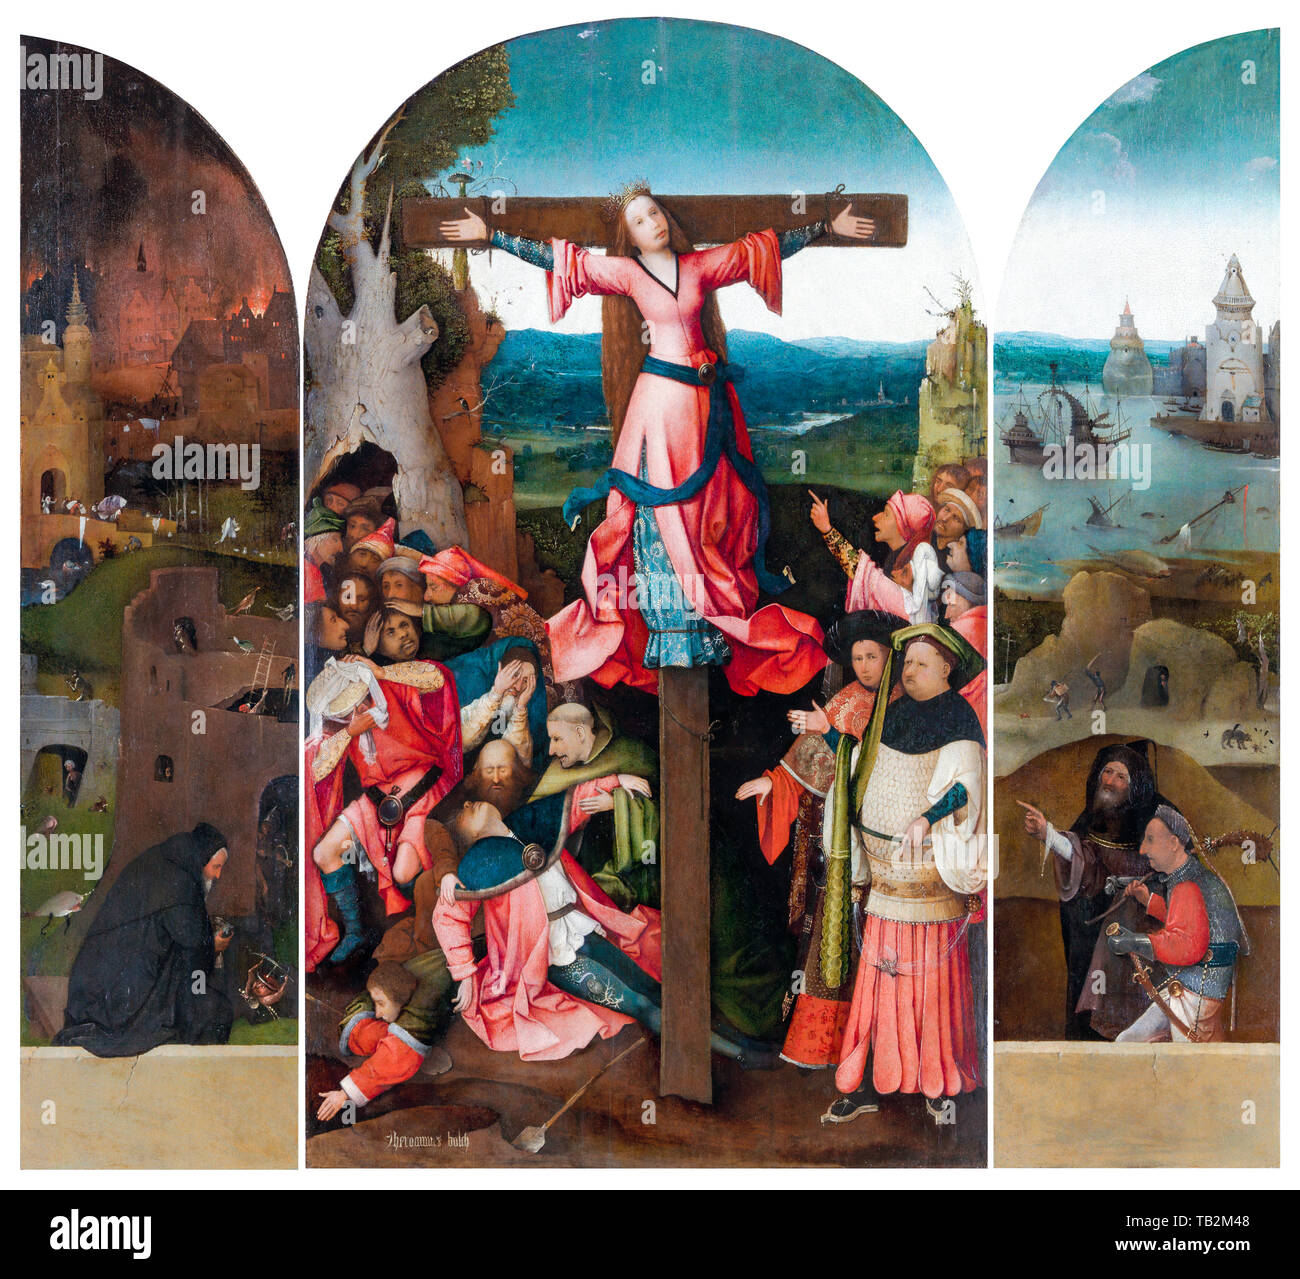 Hieronymus Bosch, Triptych of the Crucified Martyr, painting, circa 1497 - Stock Image